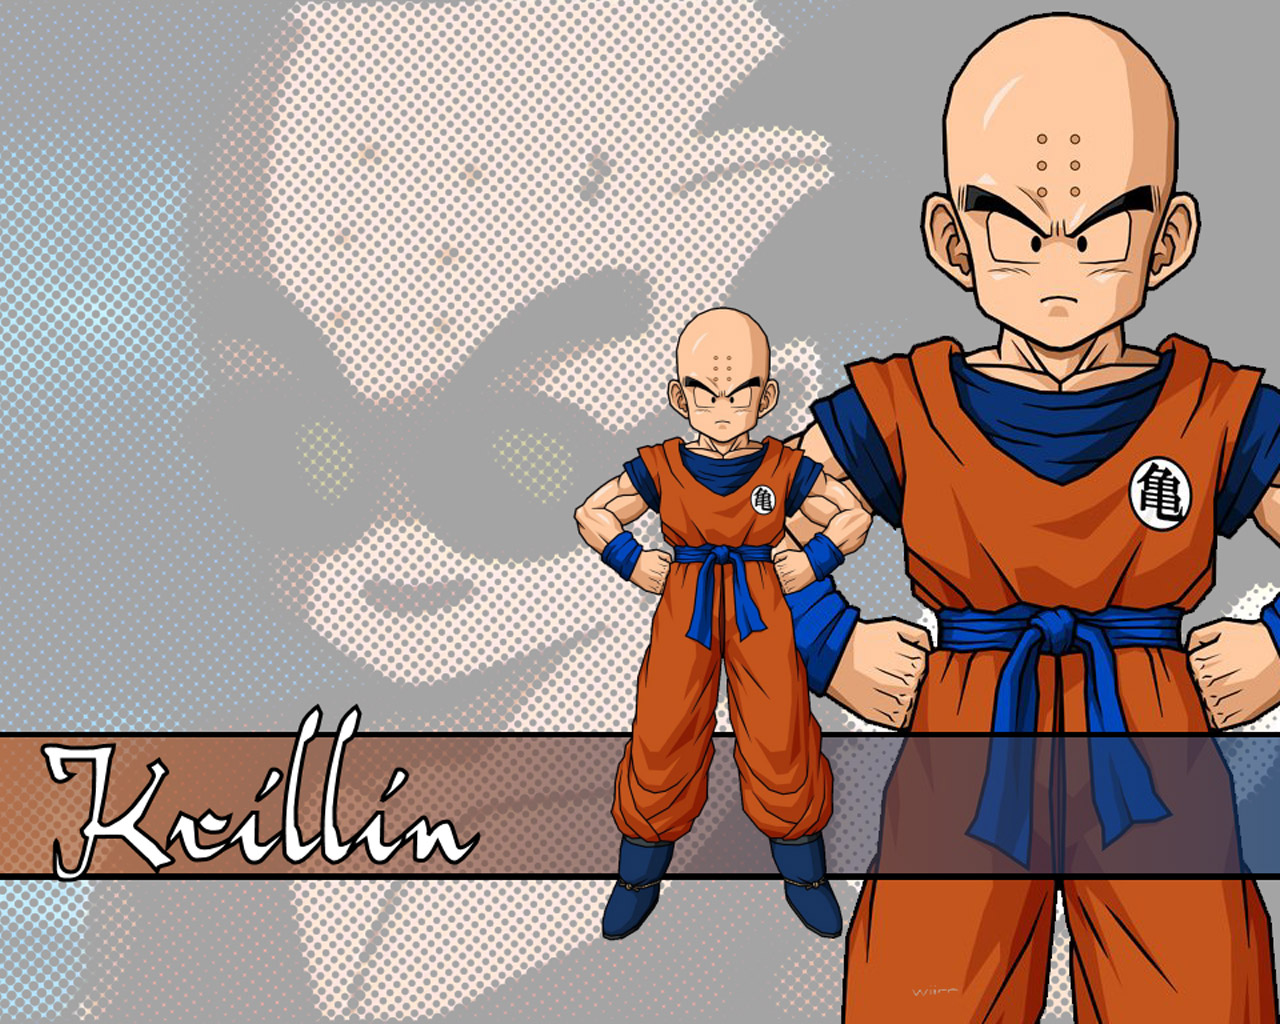 Krillin Dragonball Anime Wallpaper 1280x1024 Full HD Wallpapers 1280x1024